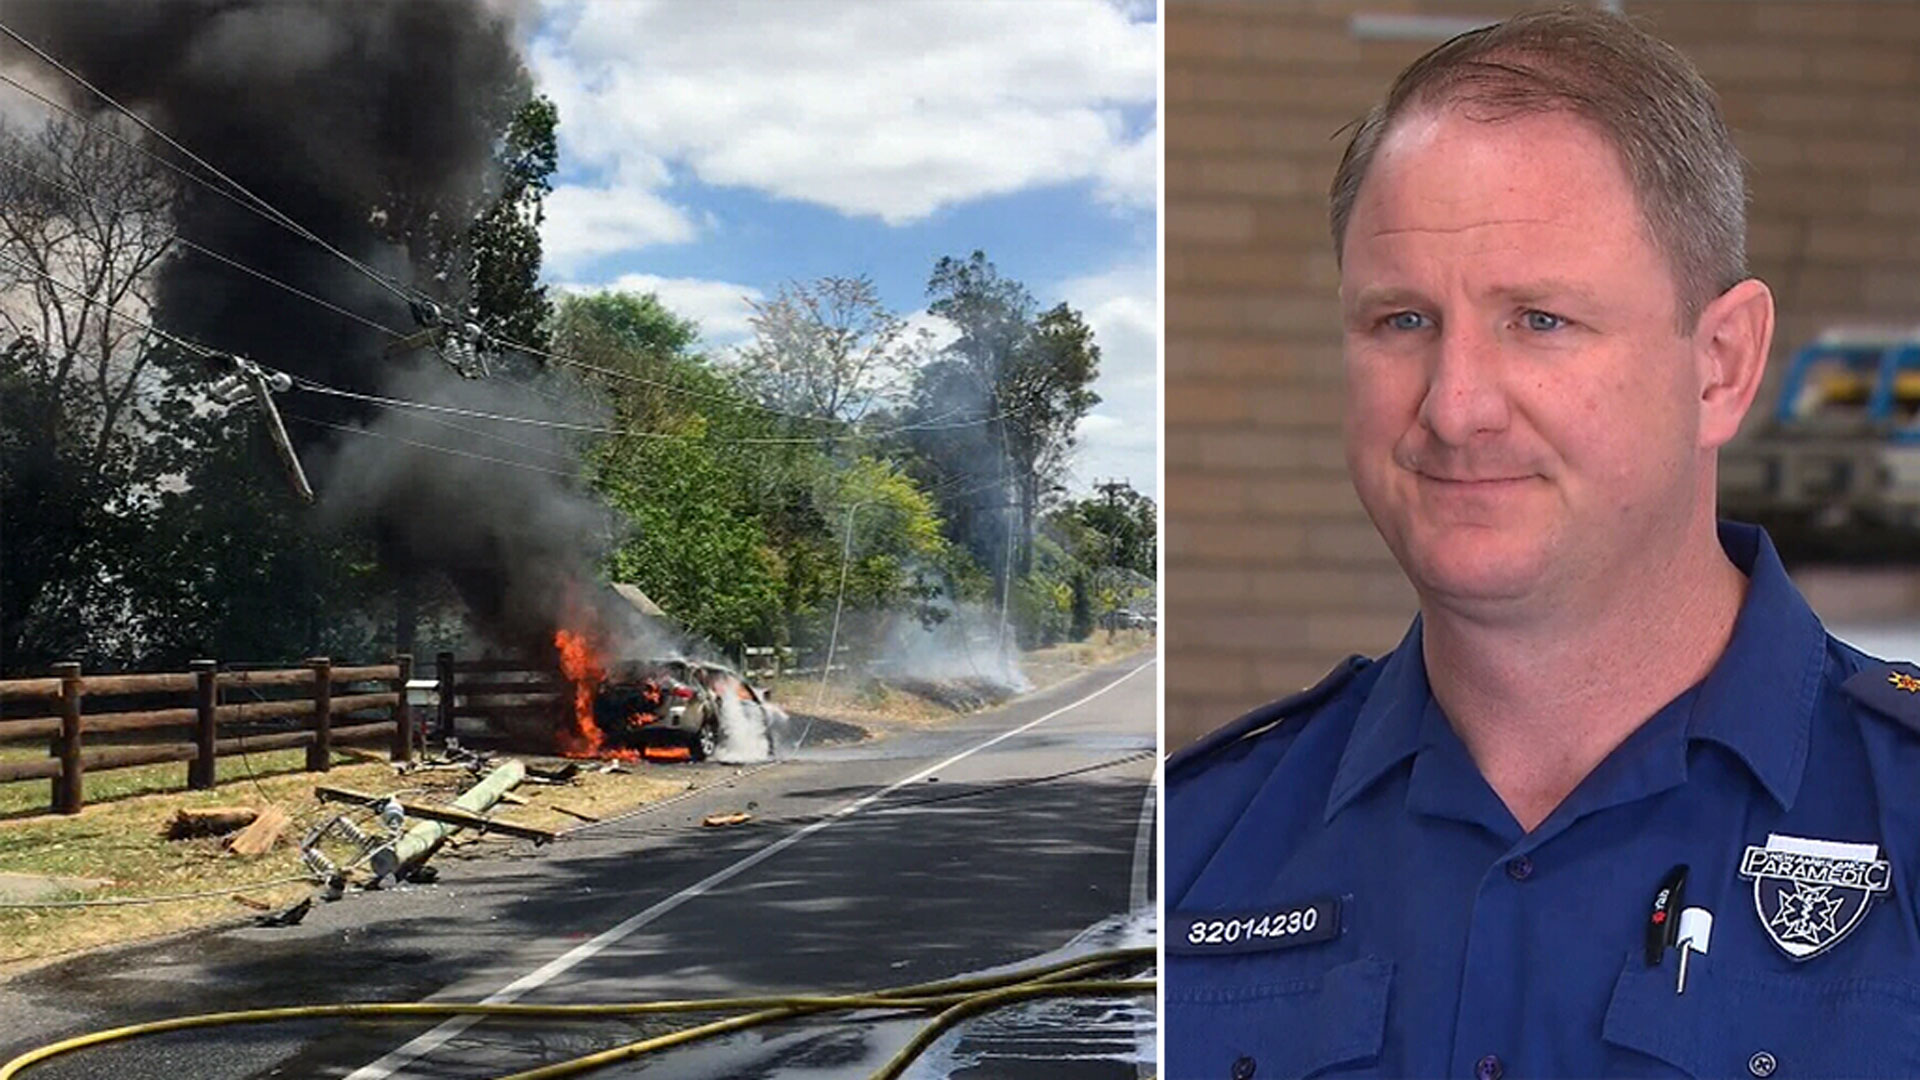 Off-duty paramedic treats grandmother and baby after fiery crash